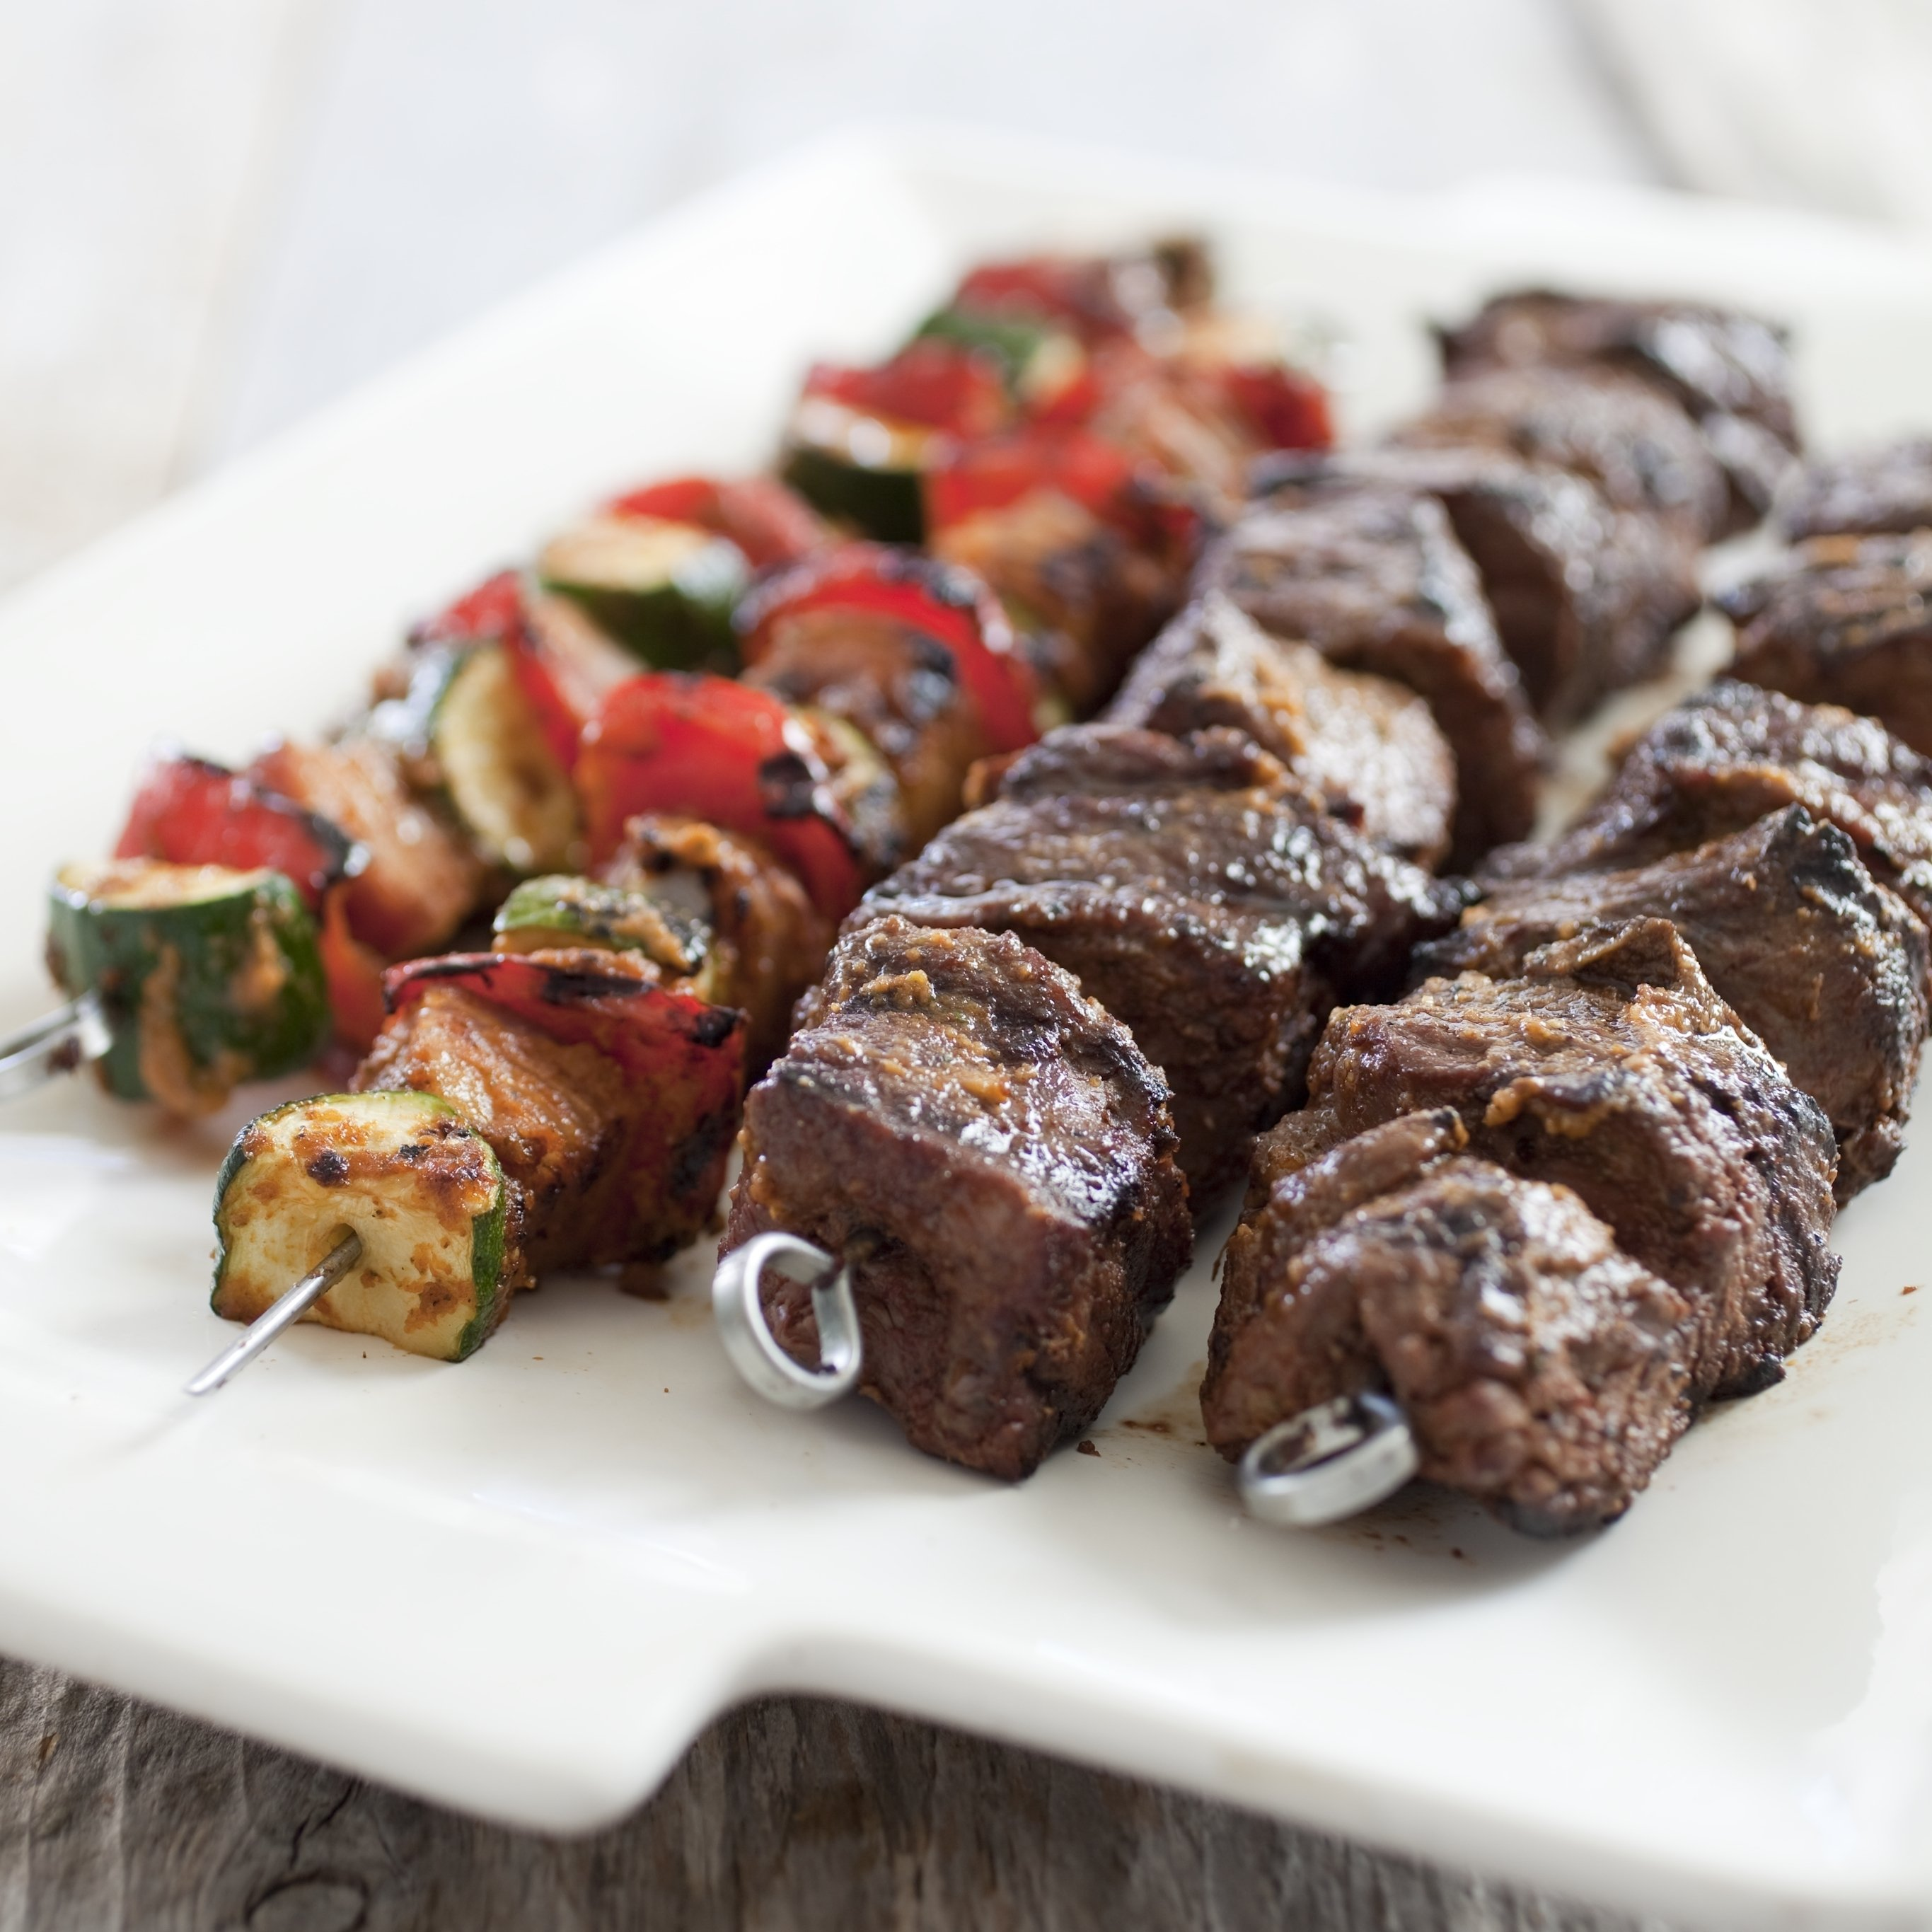 Grilled beef skewers get even better with a robust marinade